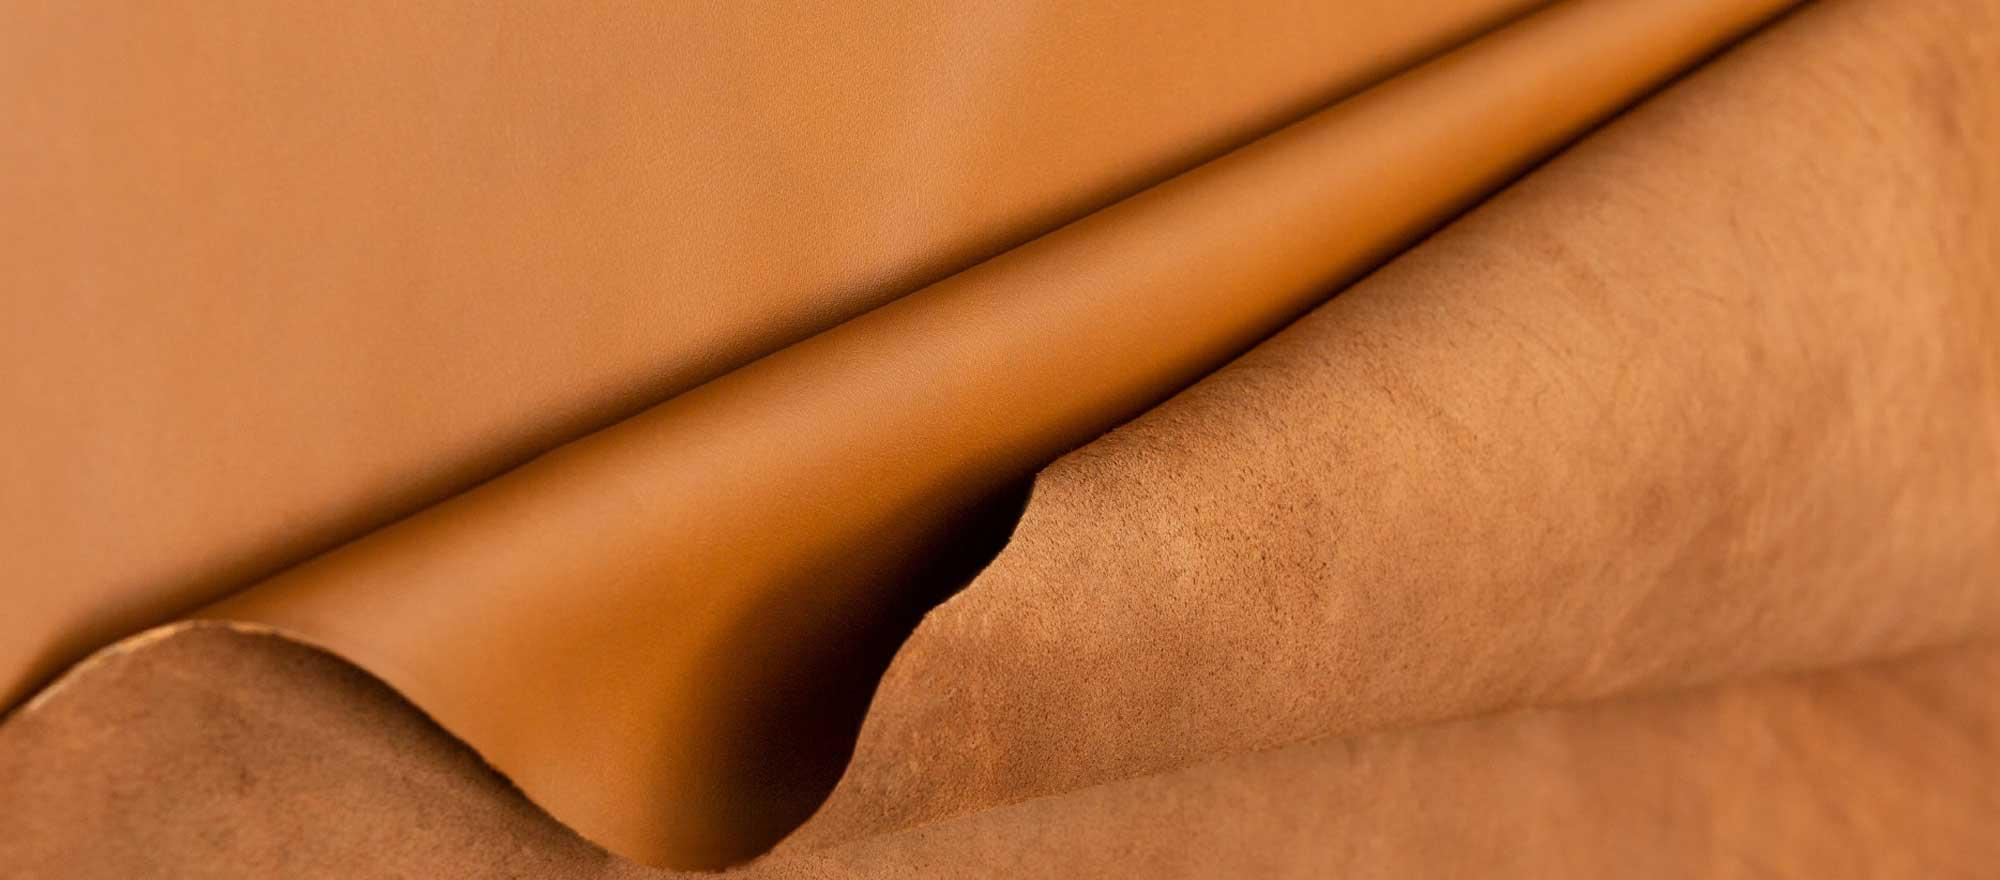 A seat covering from Muirhead Leather is self-cleaning and employs material that's effective against viruses.